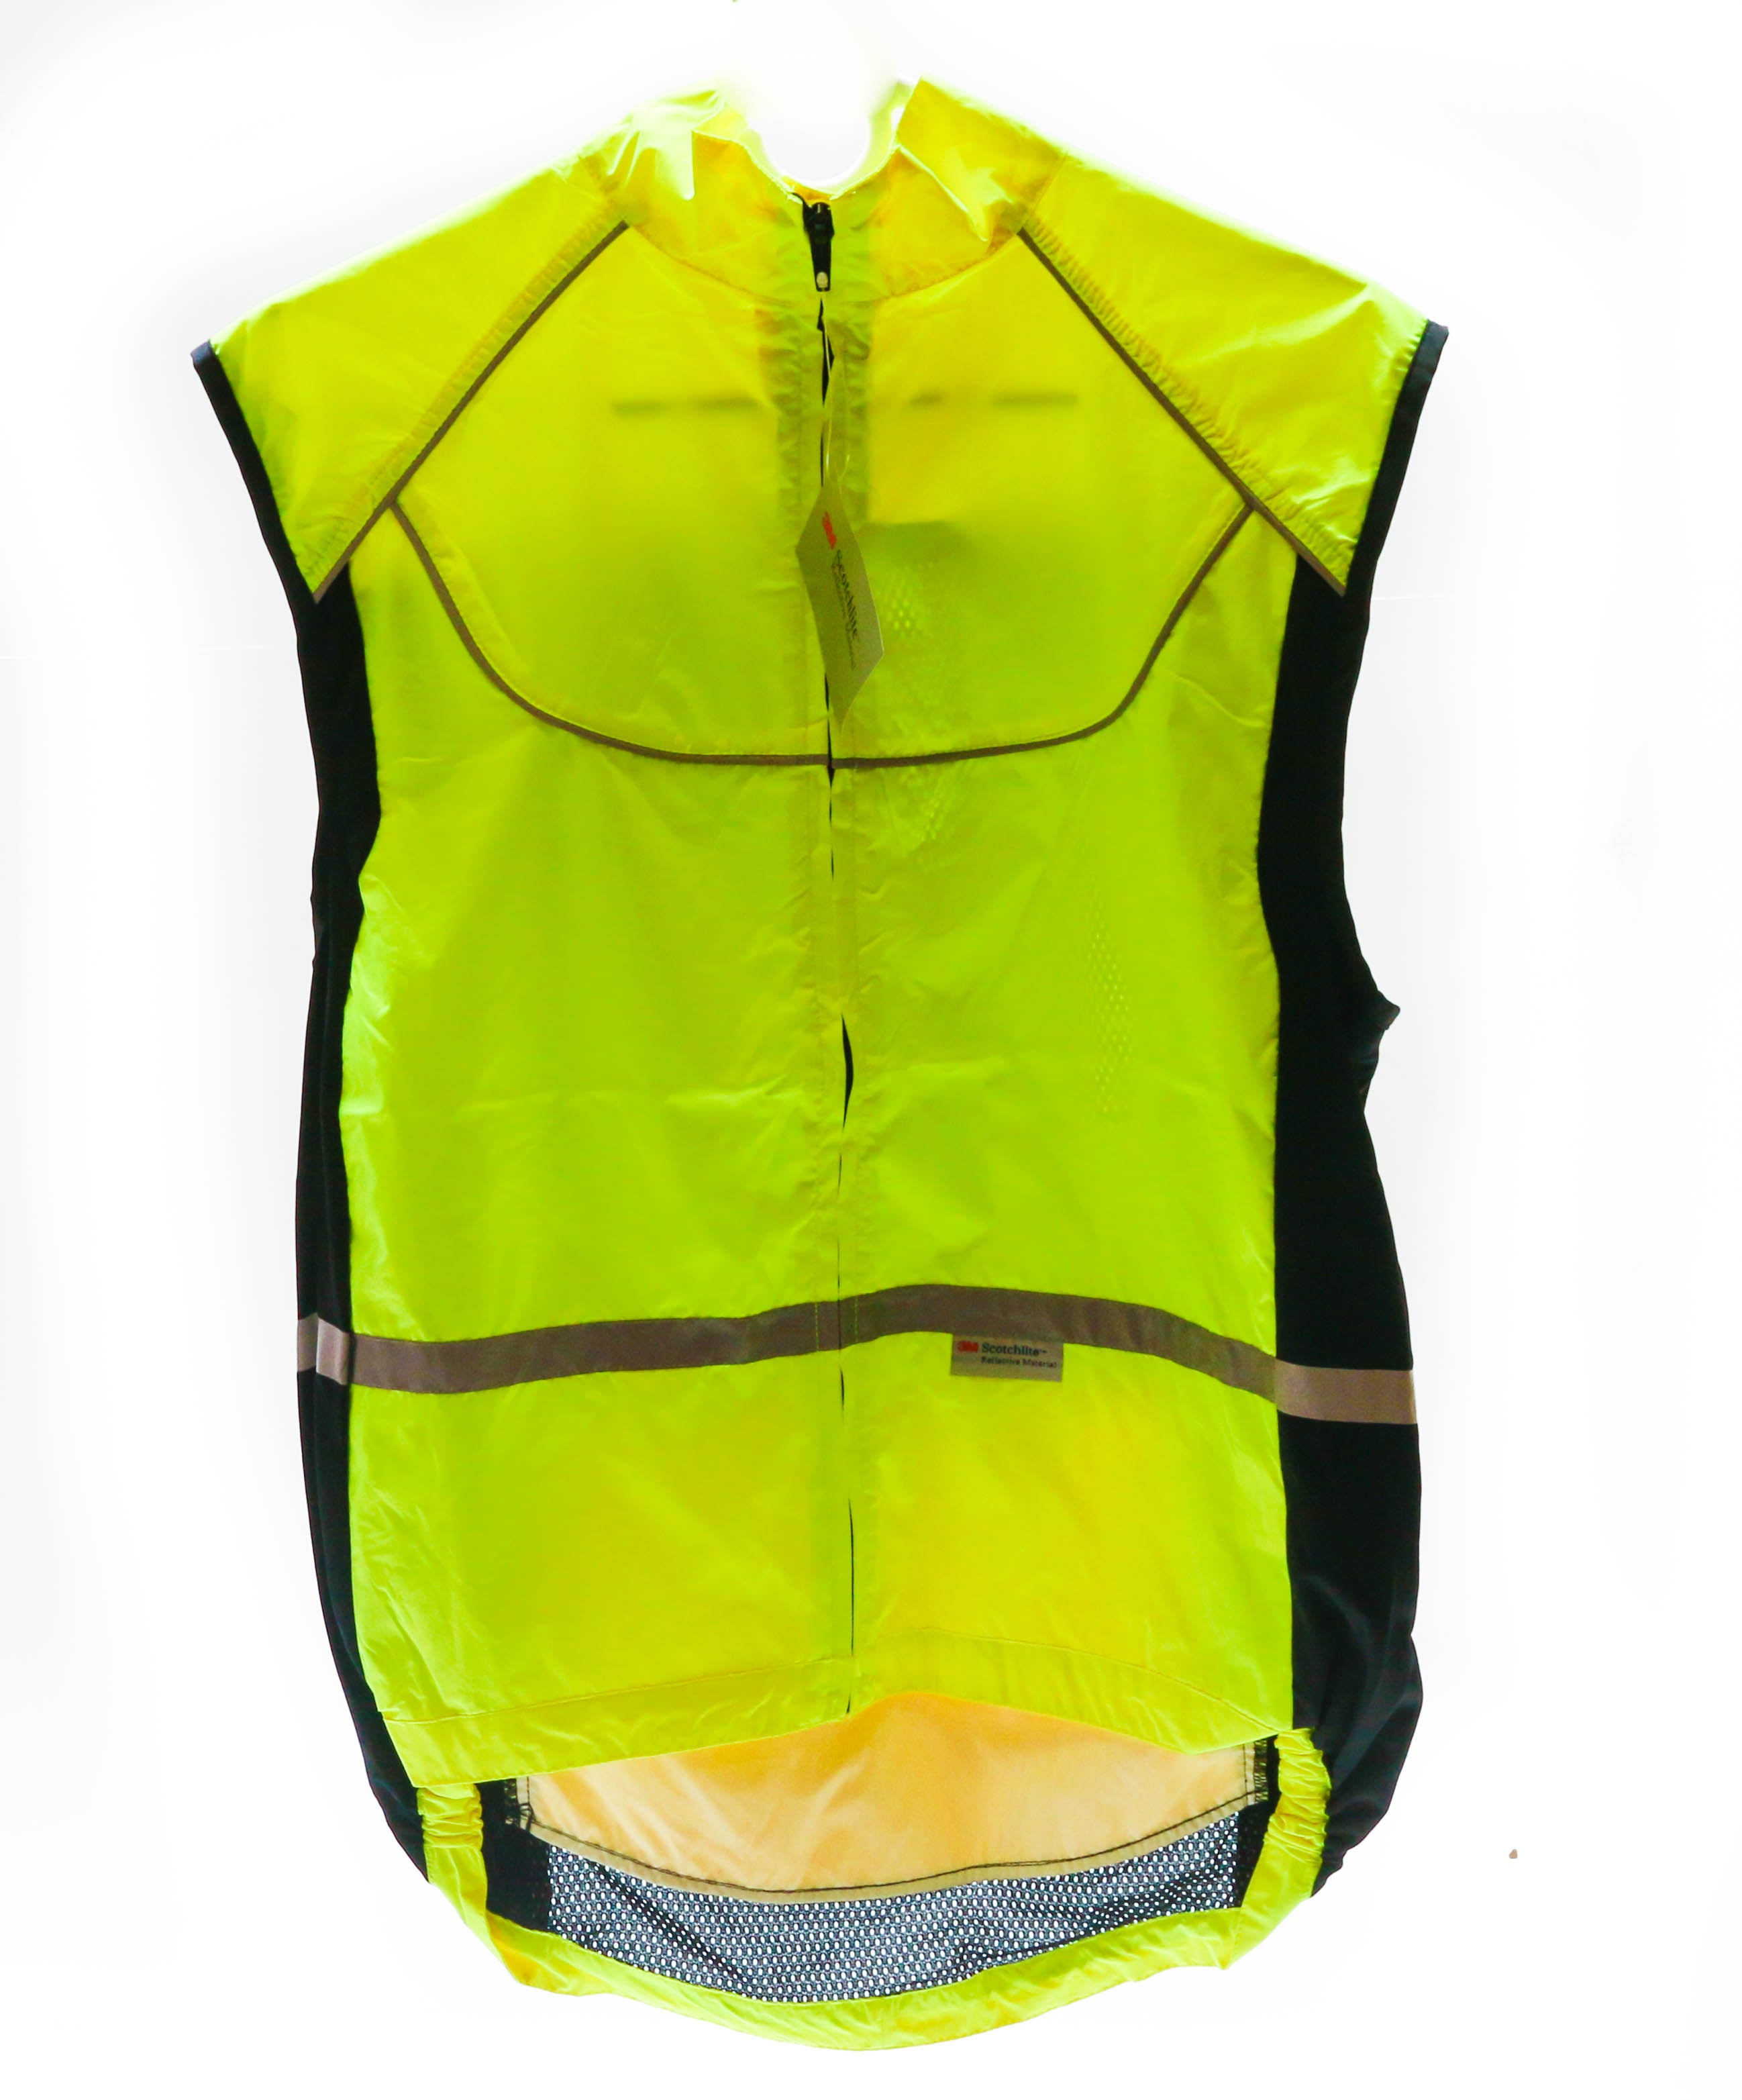 WOWOW XL Sleeveless Sport Jacket  Cycling Wind Vest 3M High-Viz Reflective NEW